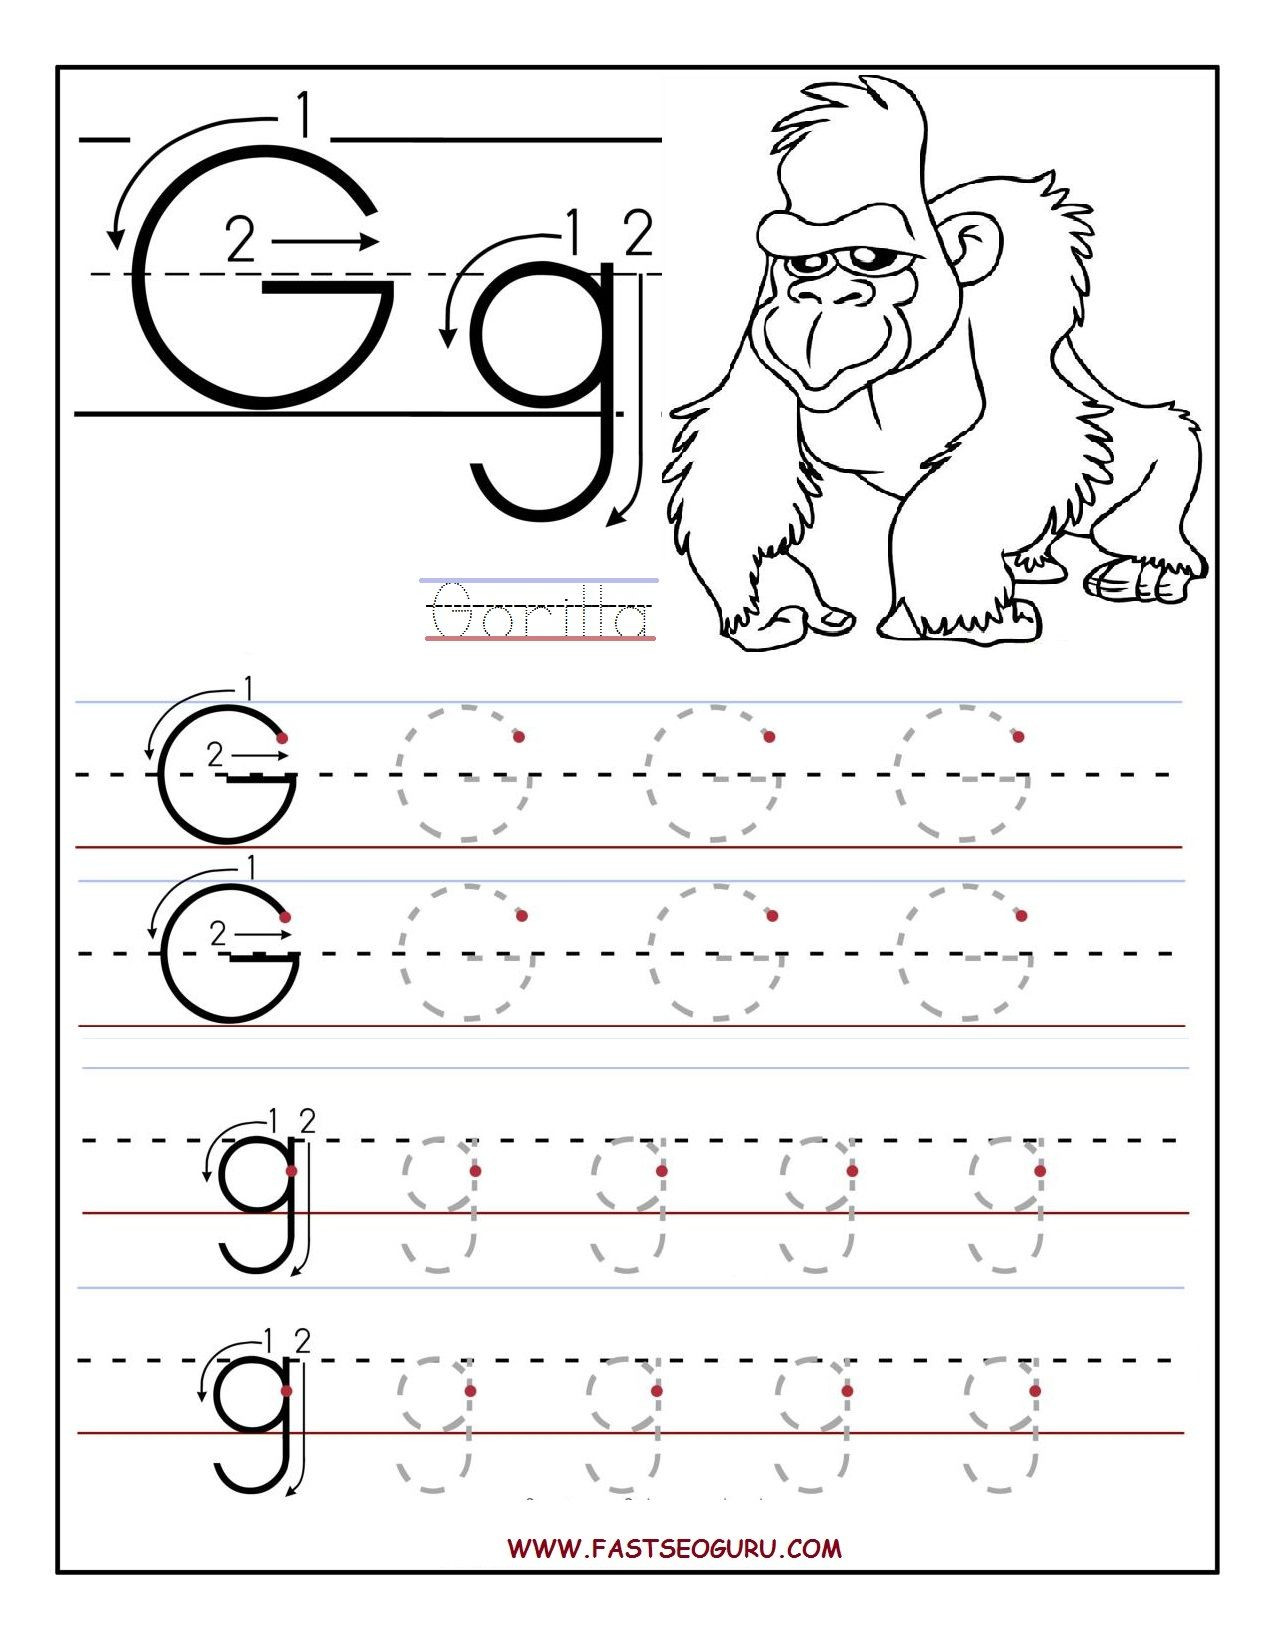 Preschool Letter G Worksheets Printable Letter G Tracing Worksheets for Preschool